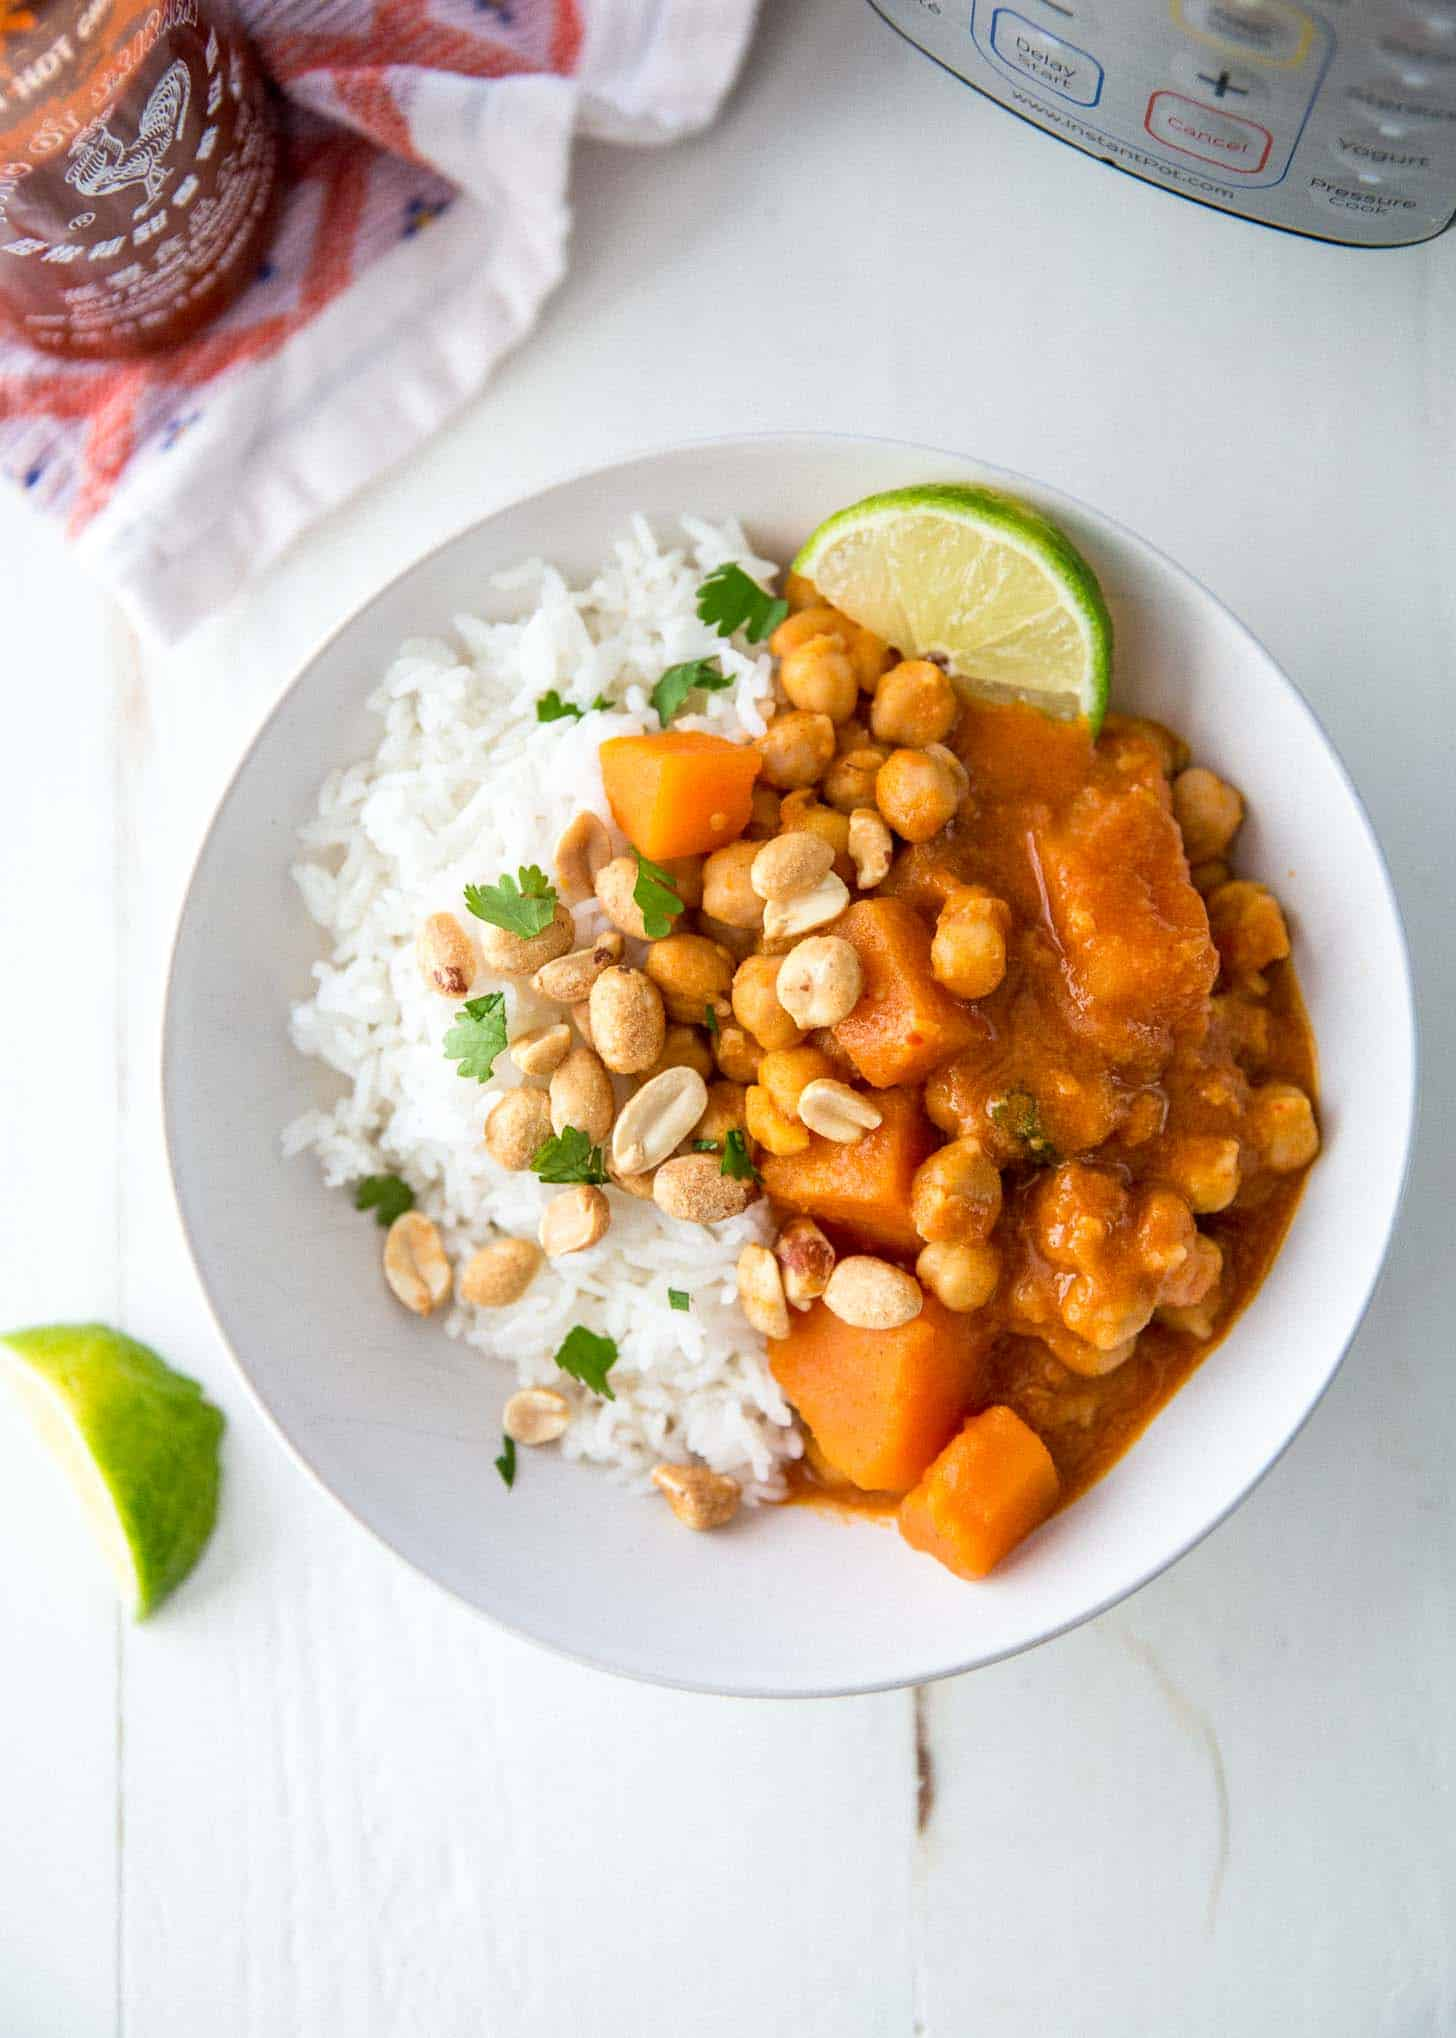 panang curry over rice in a white bowl